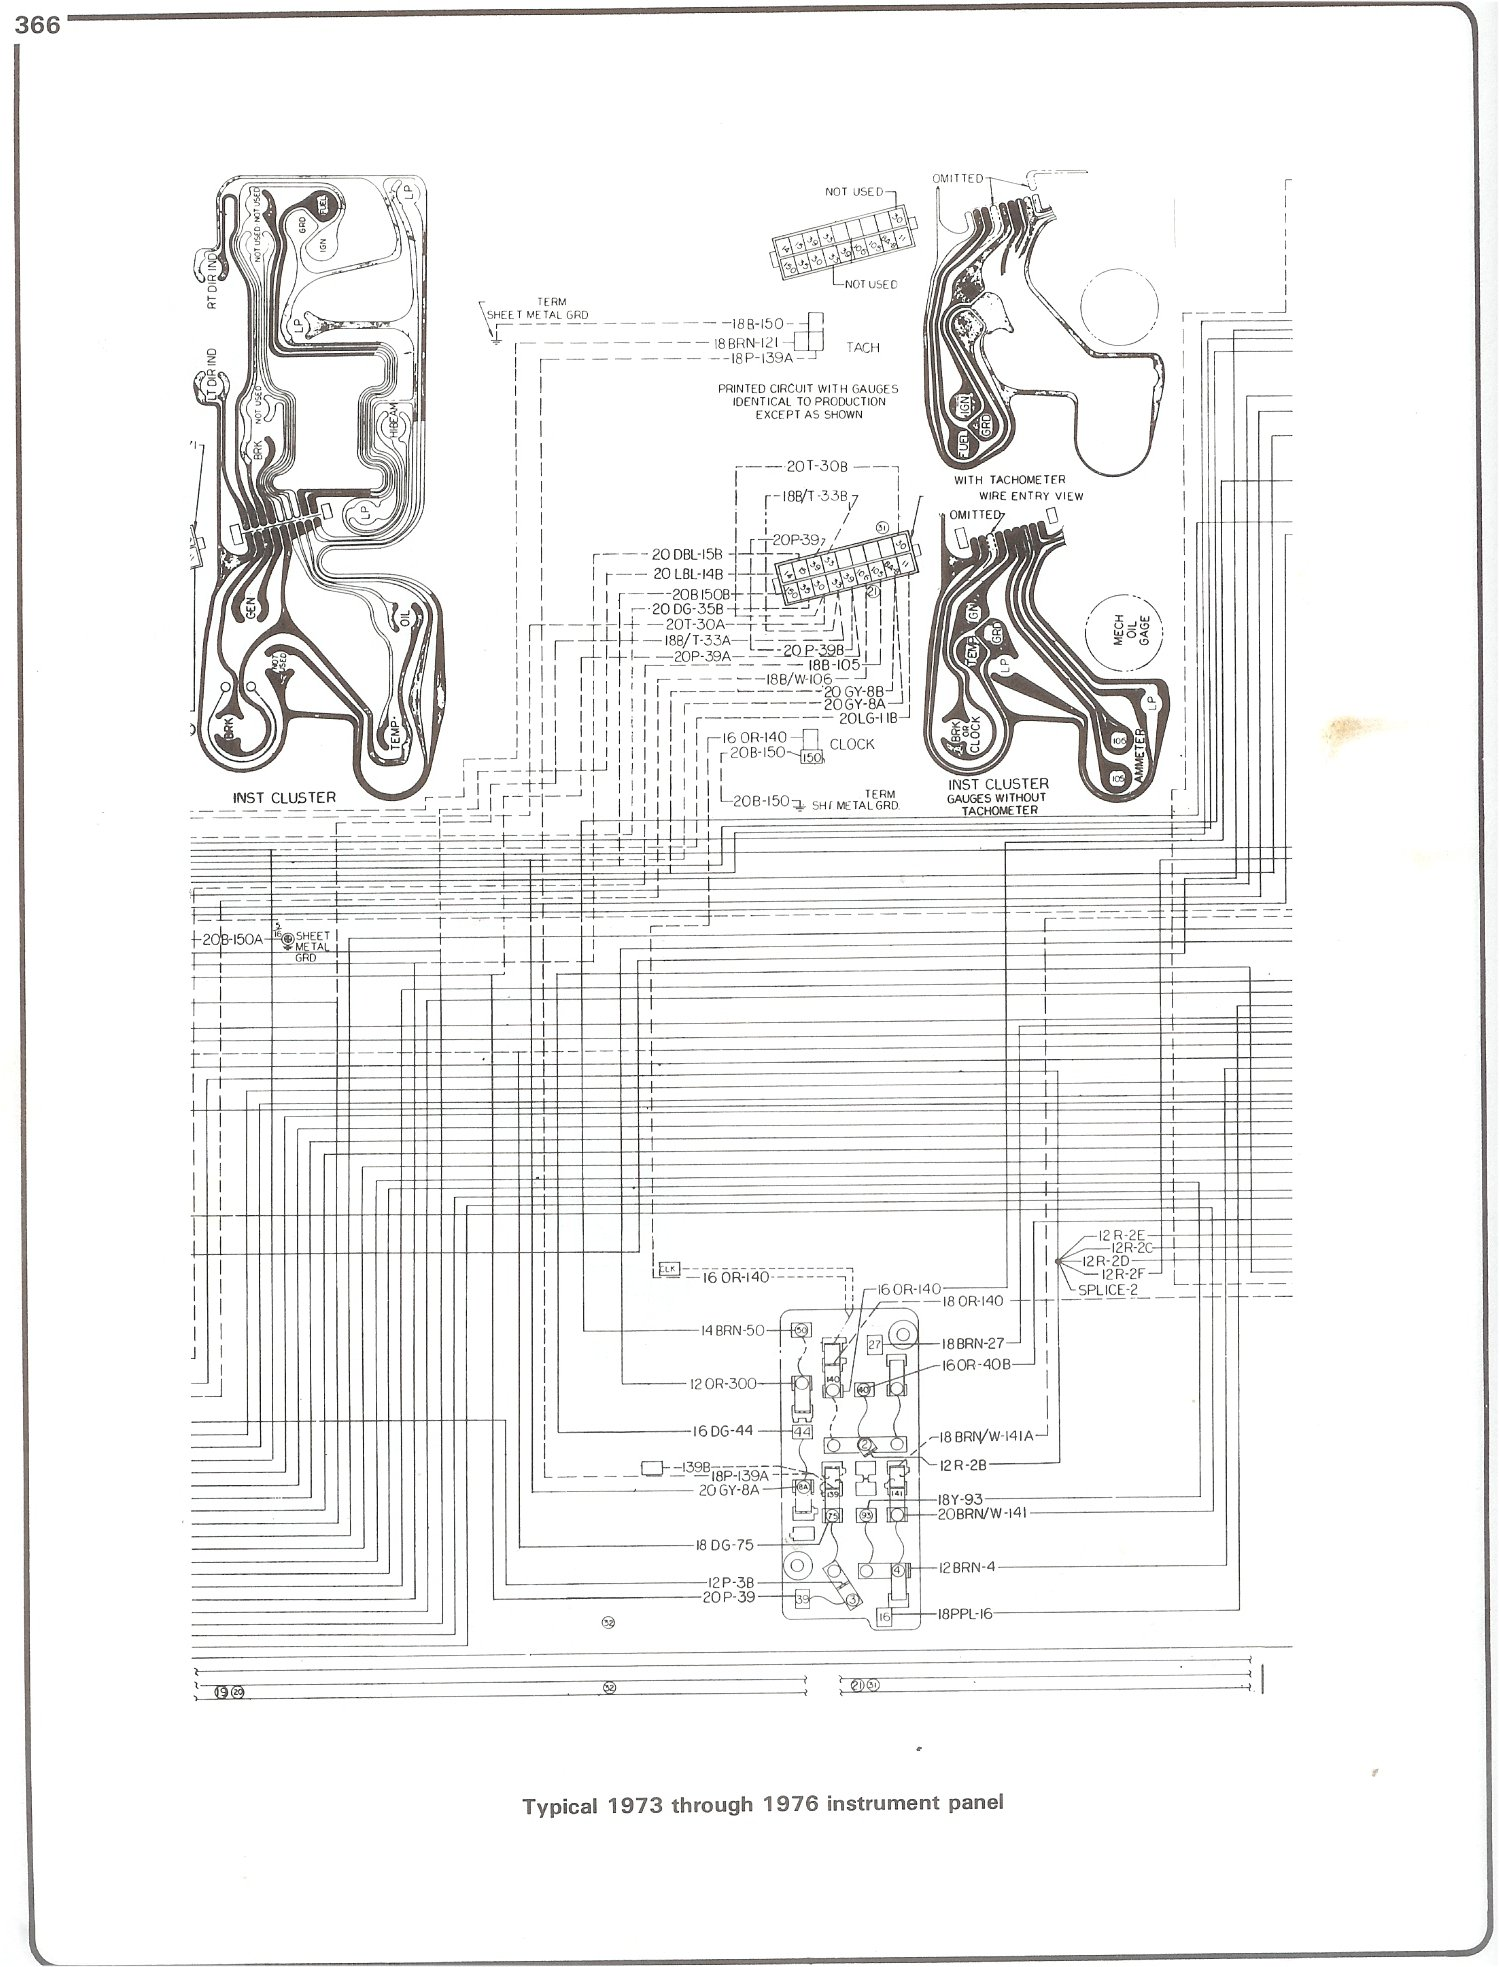 82 chevy truck wiring harness wiring diagram 1984 Chevy Van Wiring Harness 82 chevy truck wiring harness